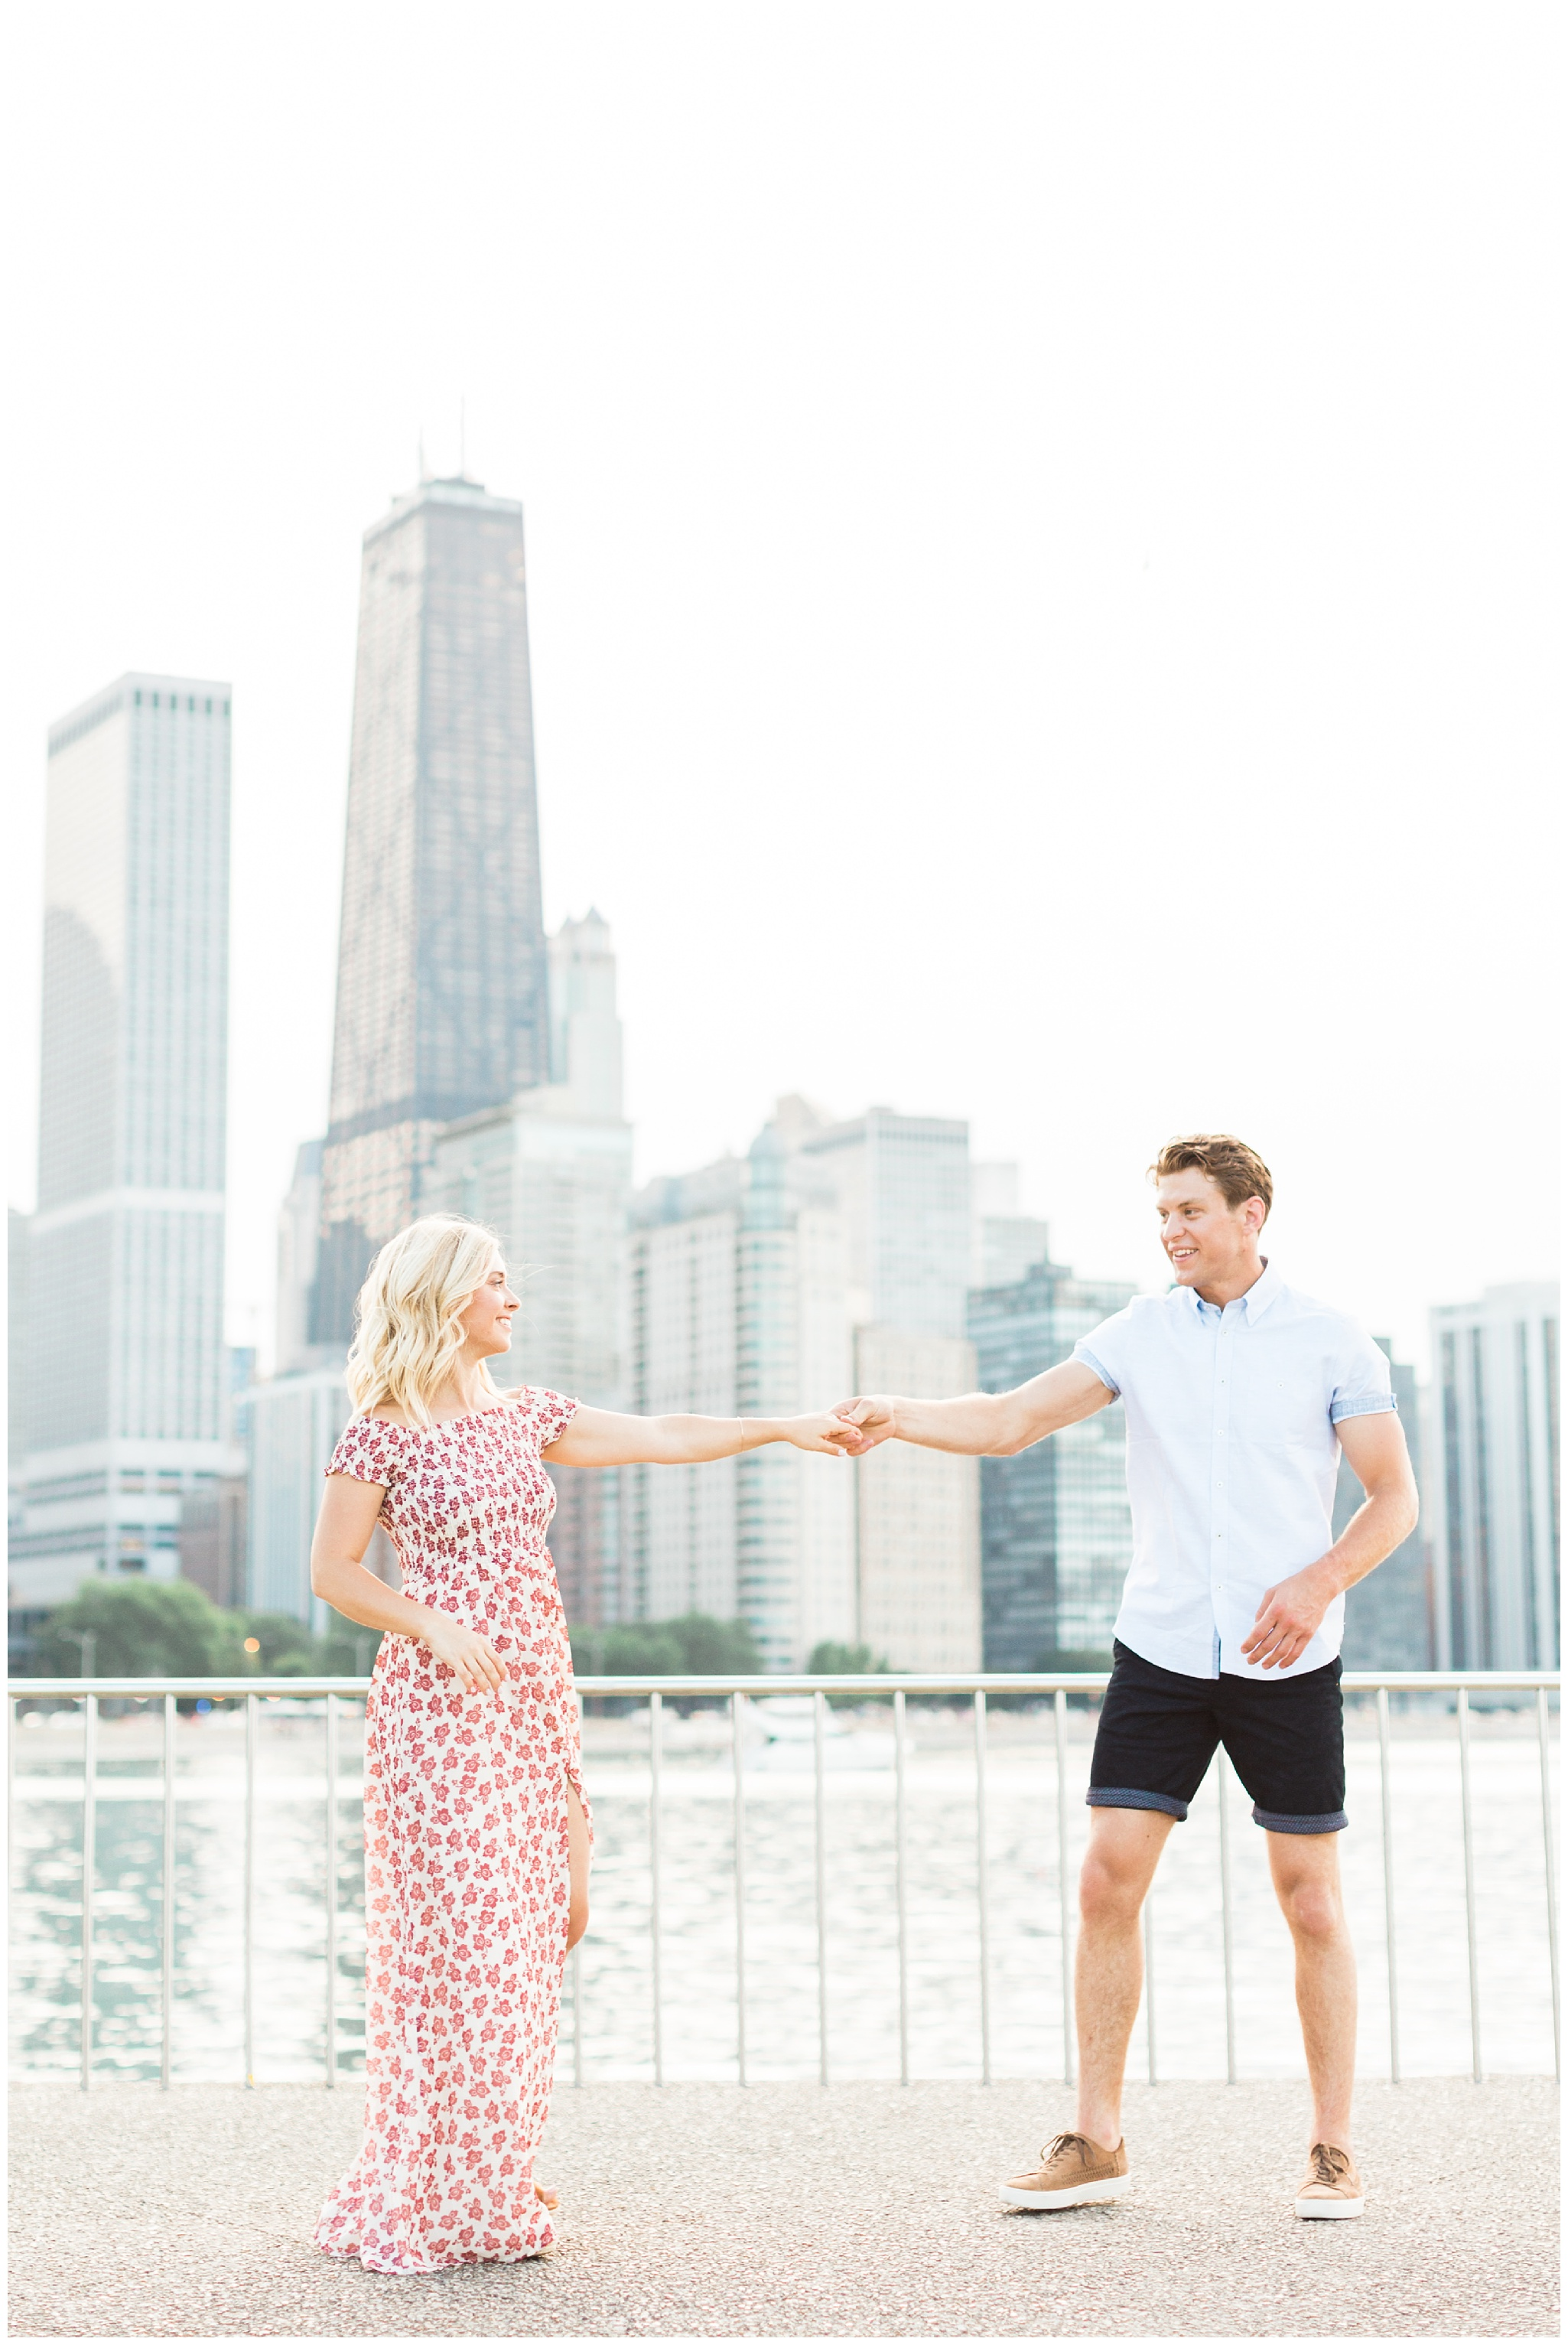 C&J_ChicagoProposal__0233.jpg